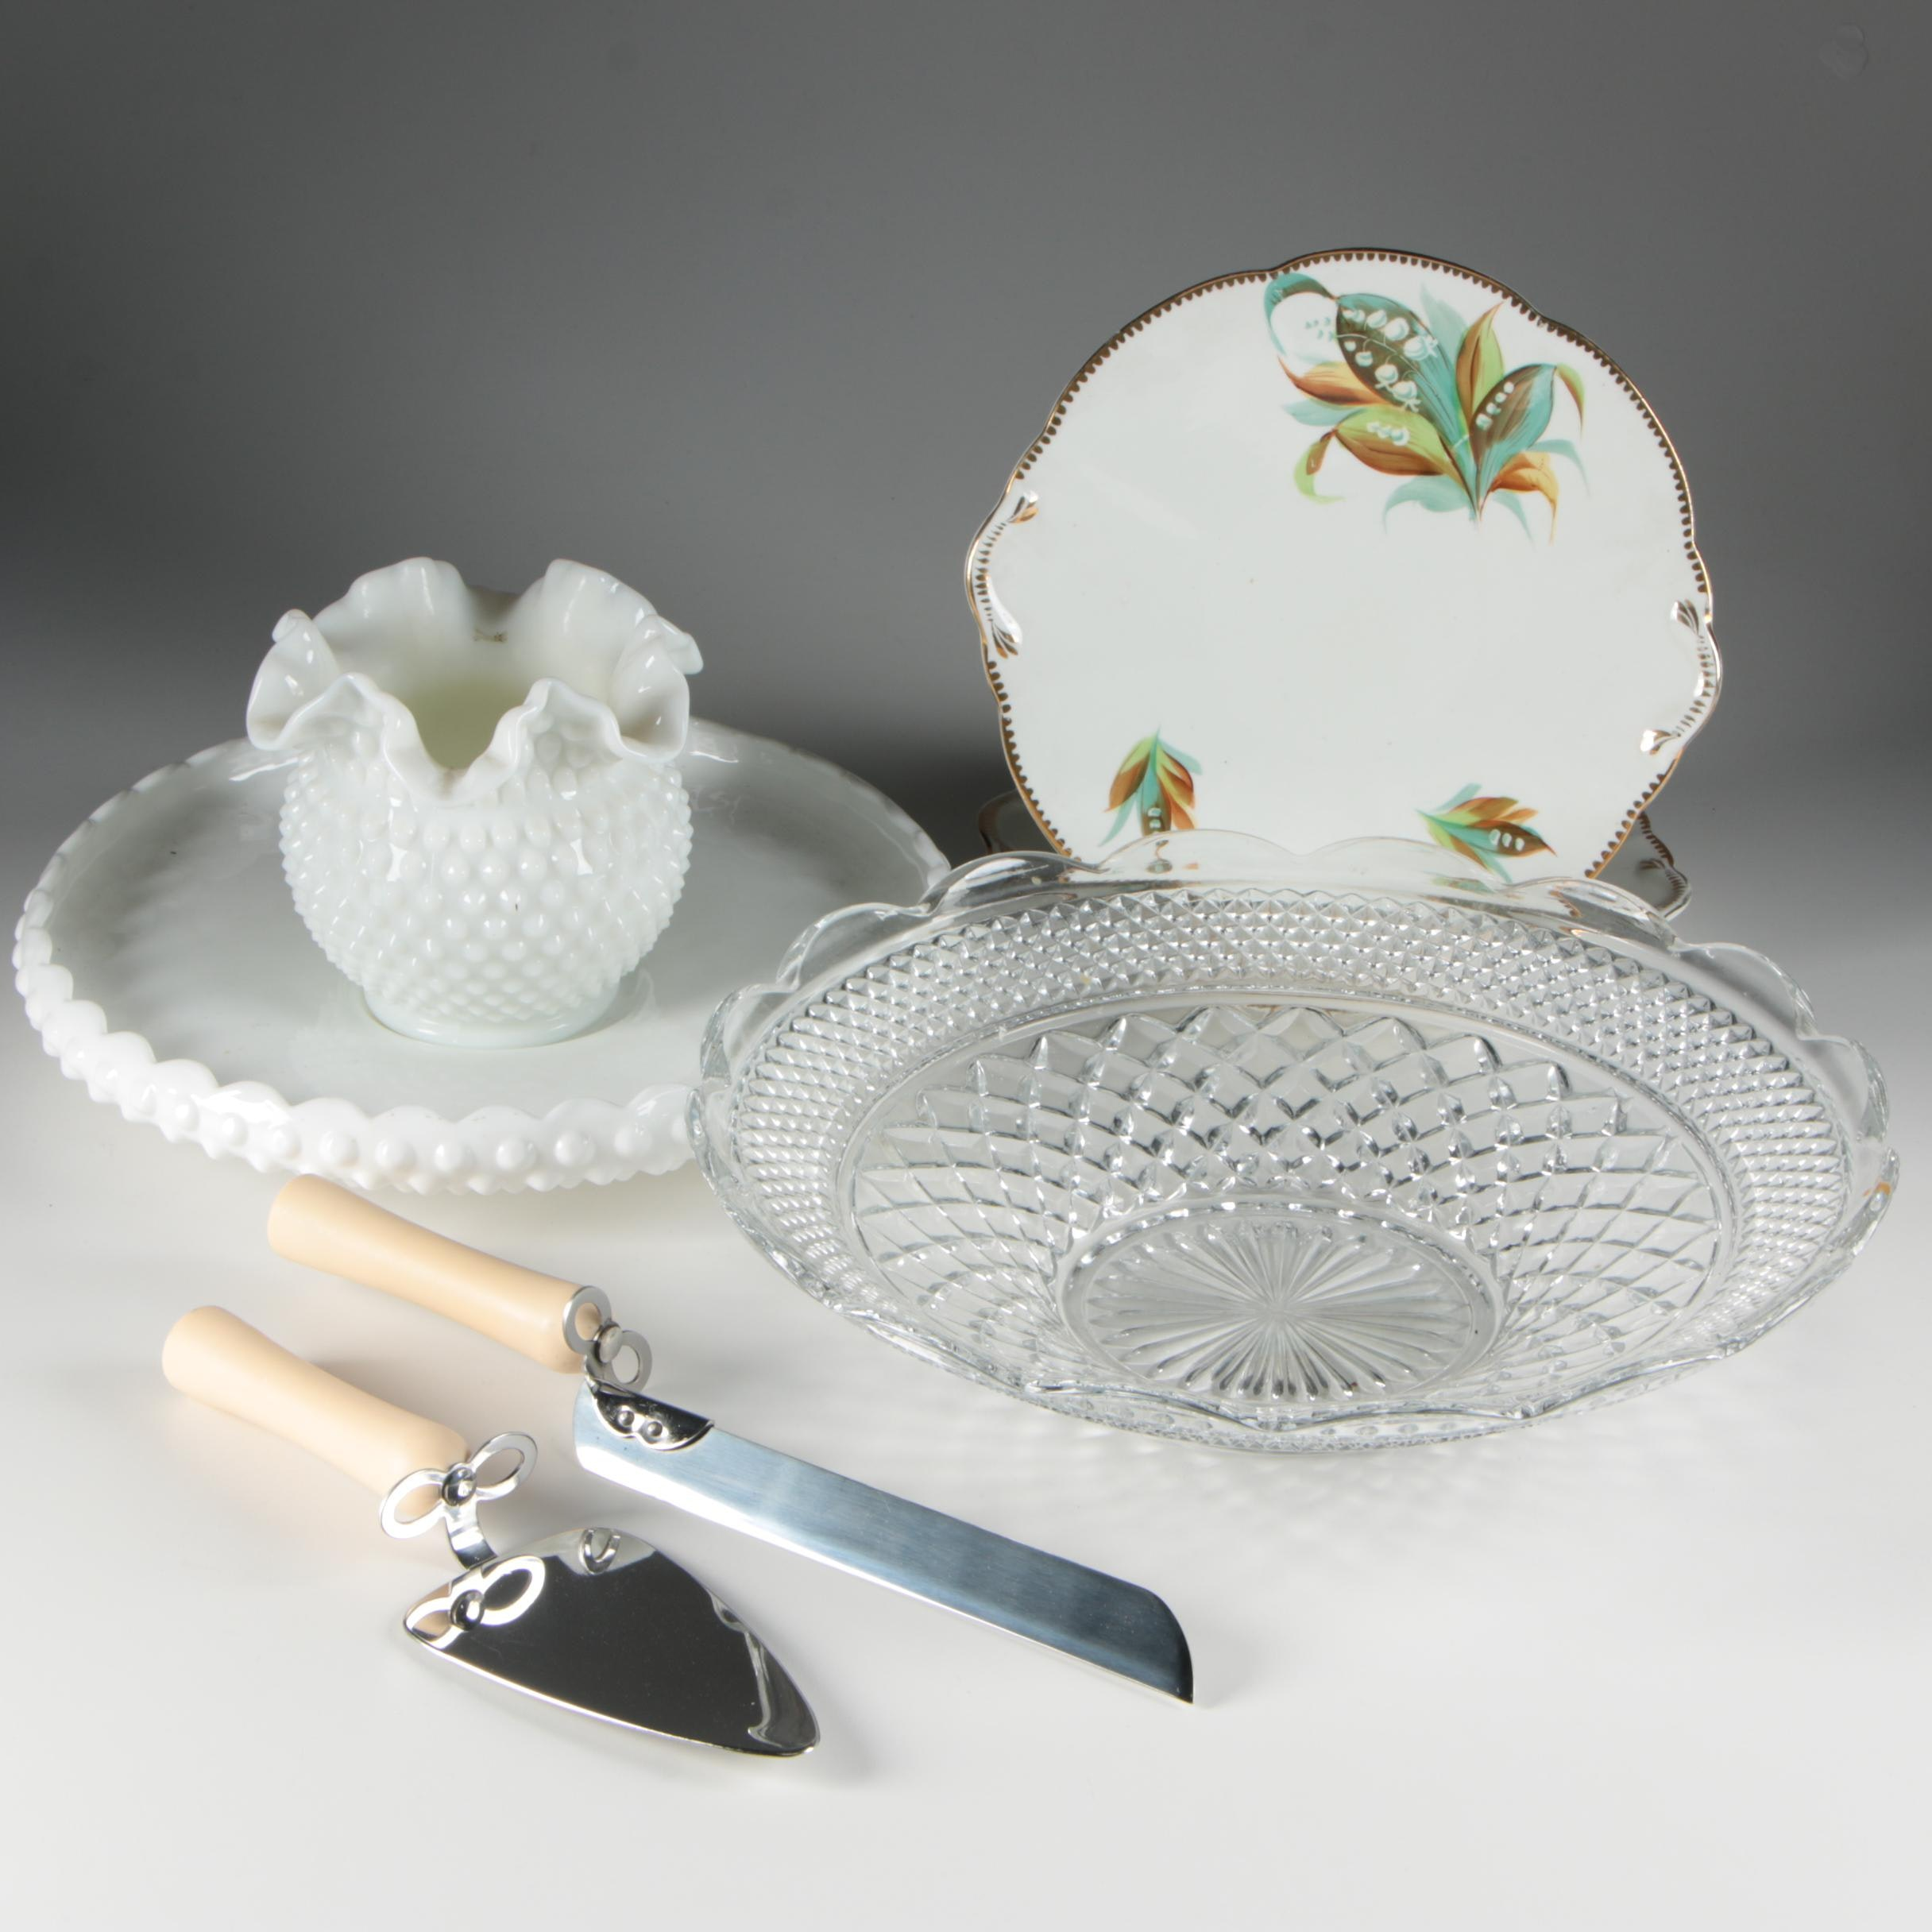 Michael Graves Cake Knife and Server with Cake Plate and Milk Glass